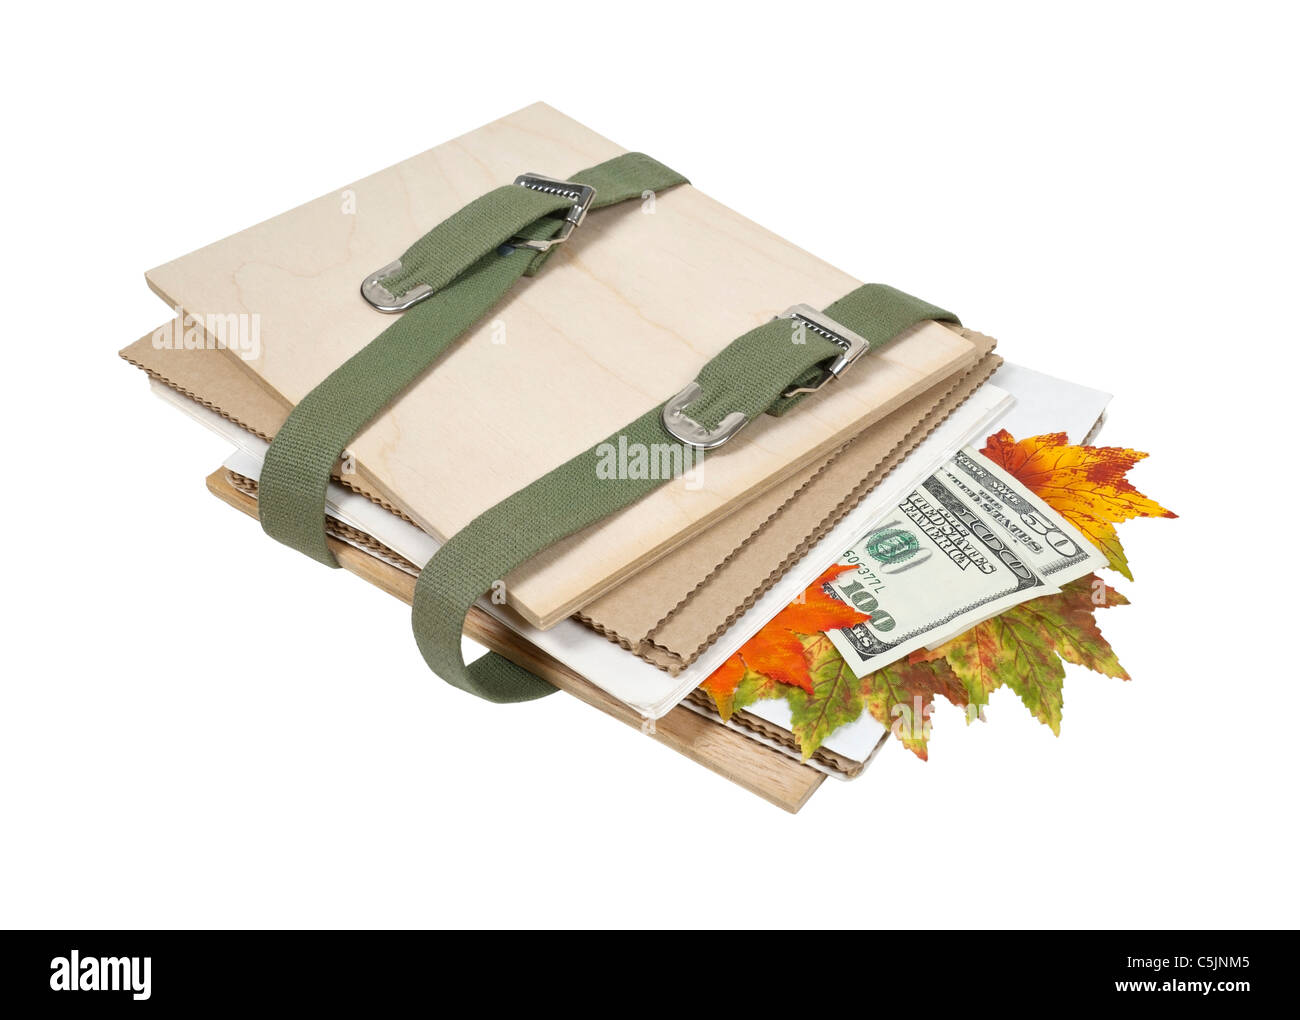 Preserving the greens shown by money and leaves in a flower press - path included - Stock Image